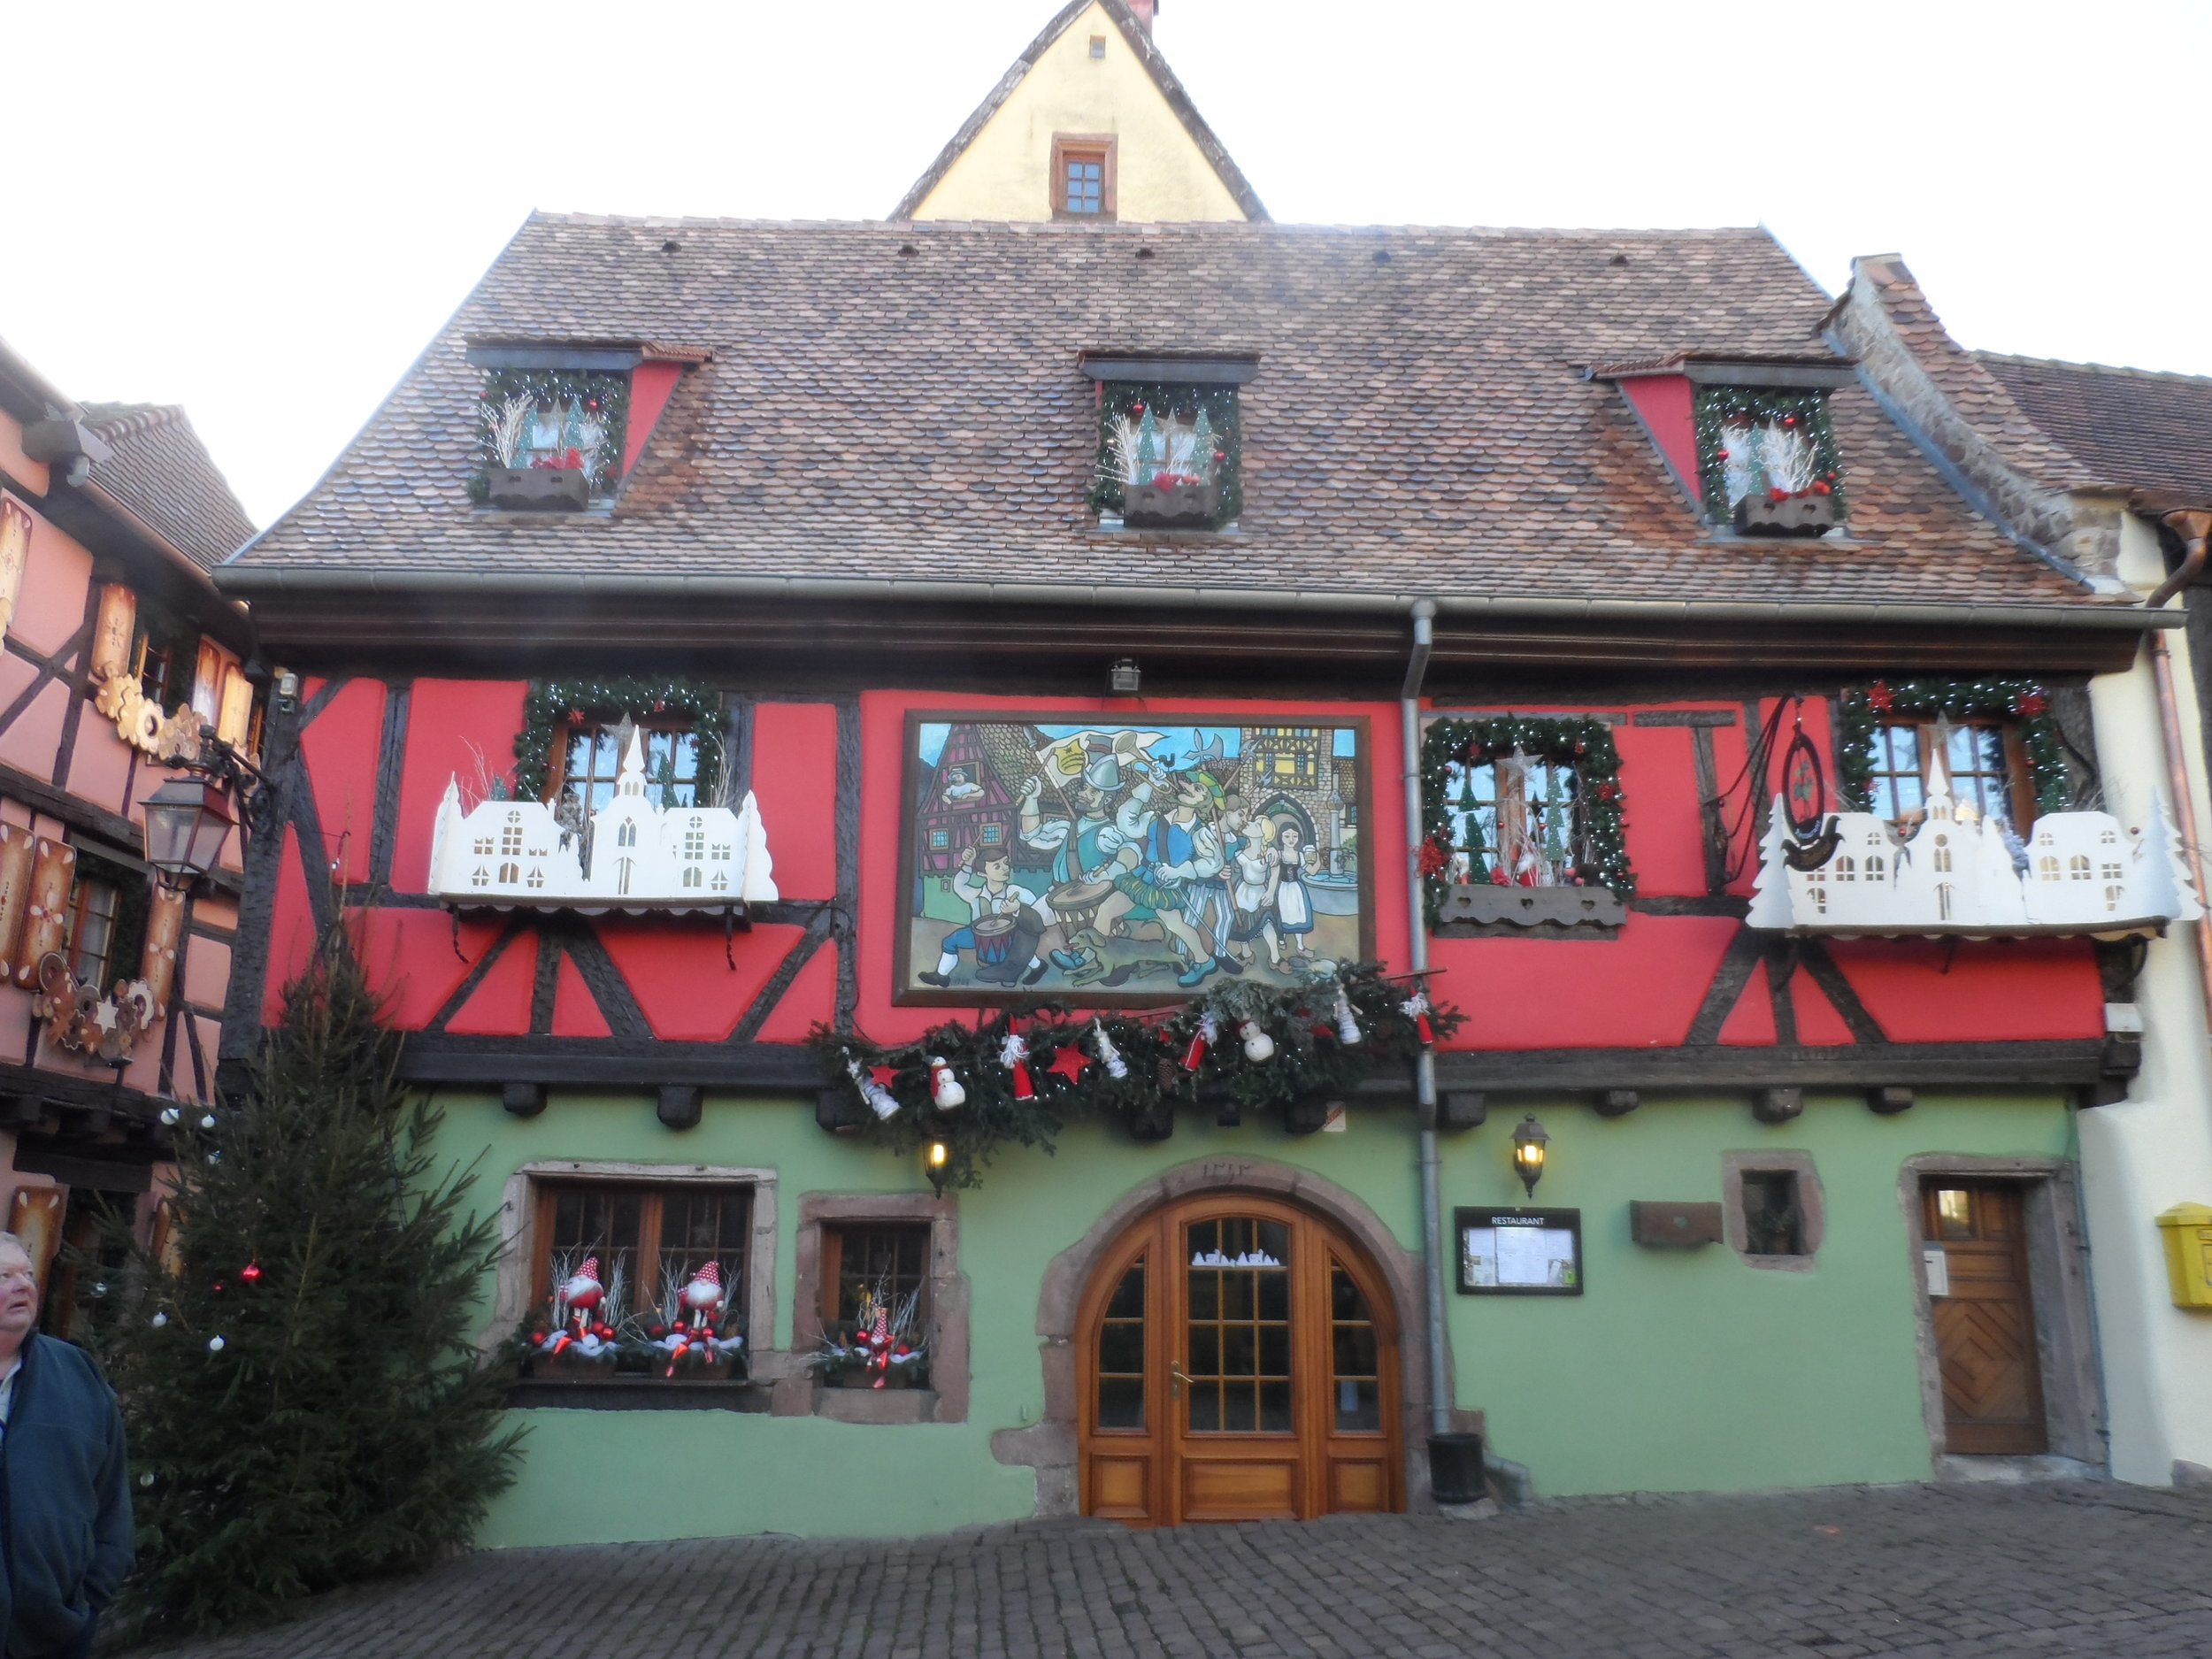 Riquewihr, France building decorated for Christmas